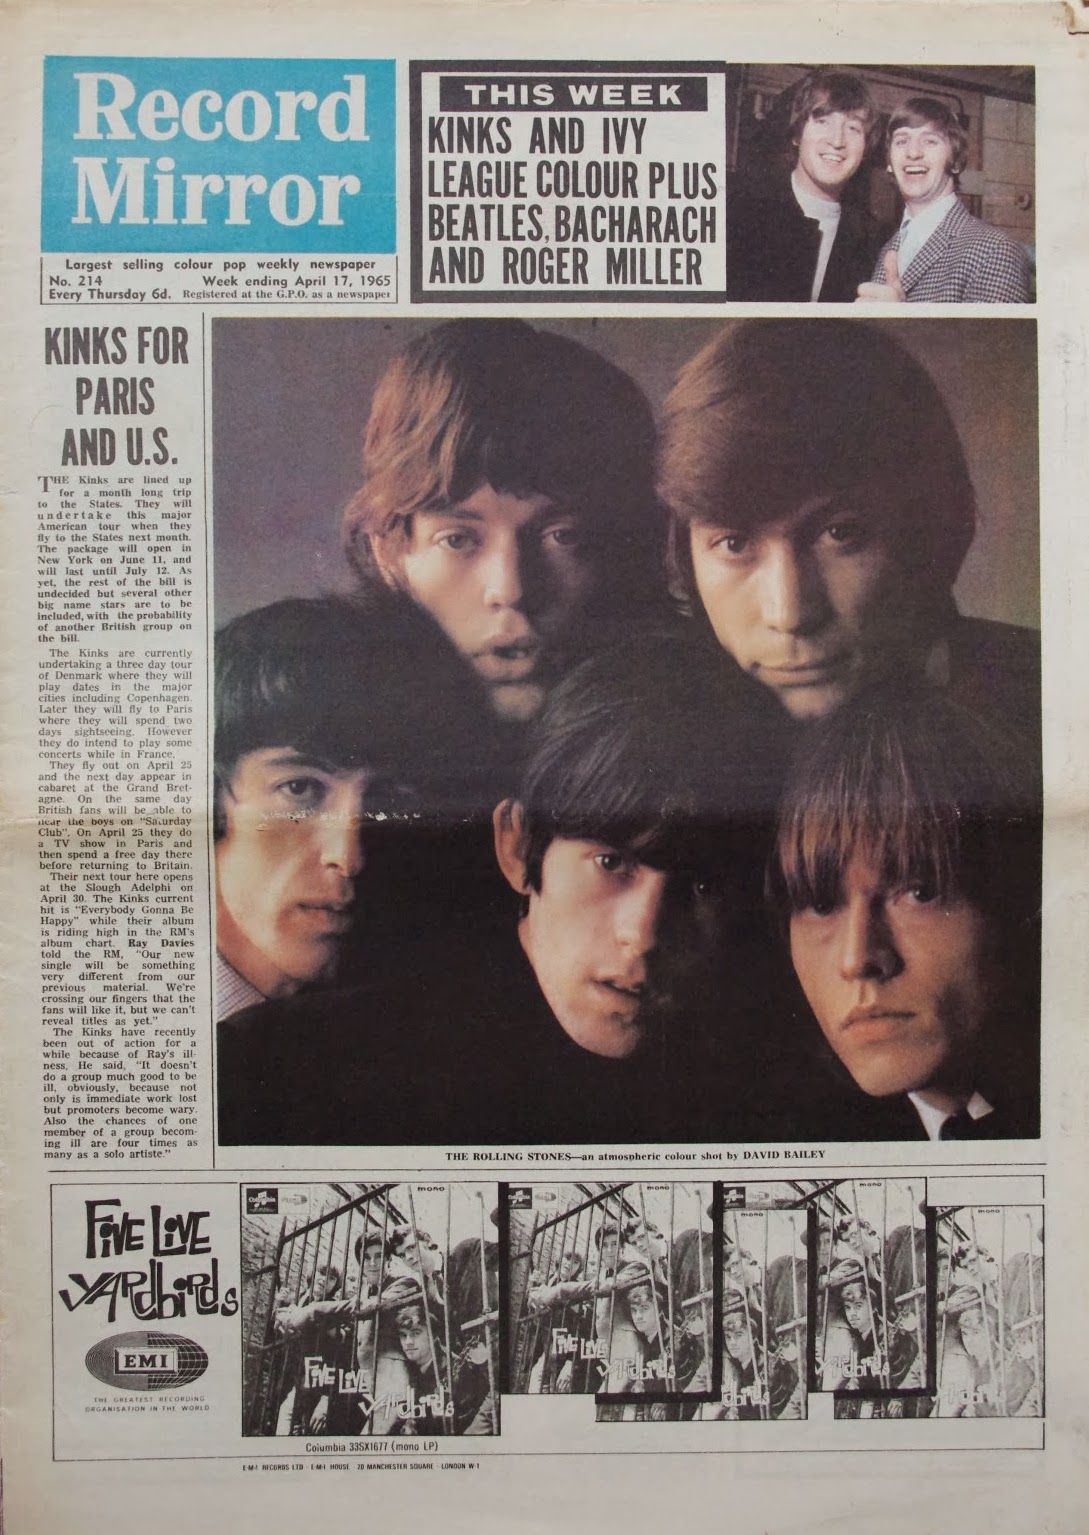 Cover of the April 17, 1965 issue of Record Mirror